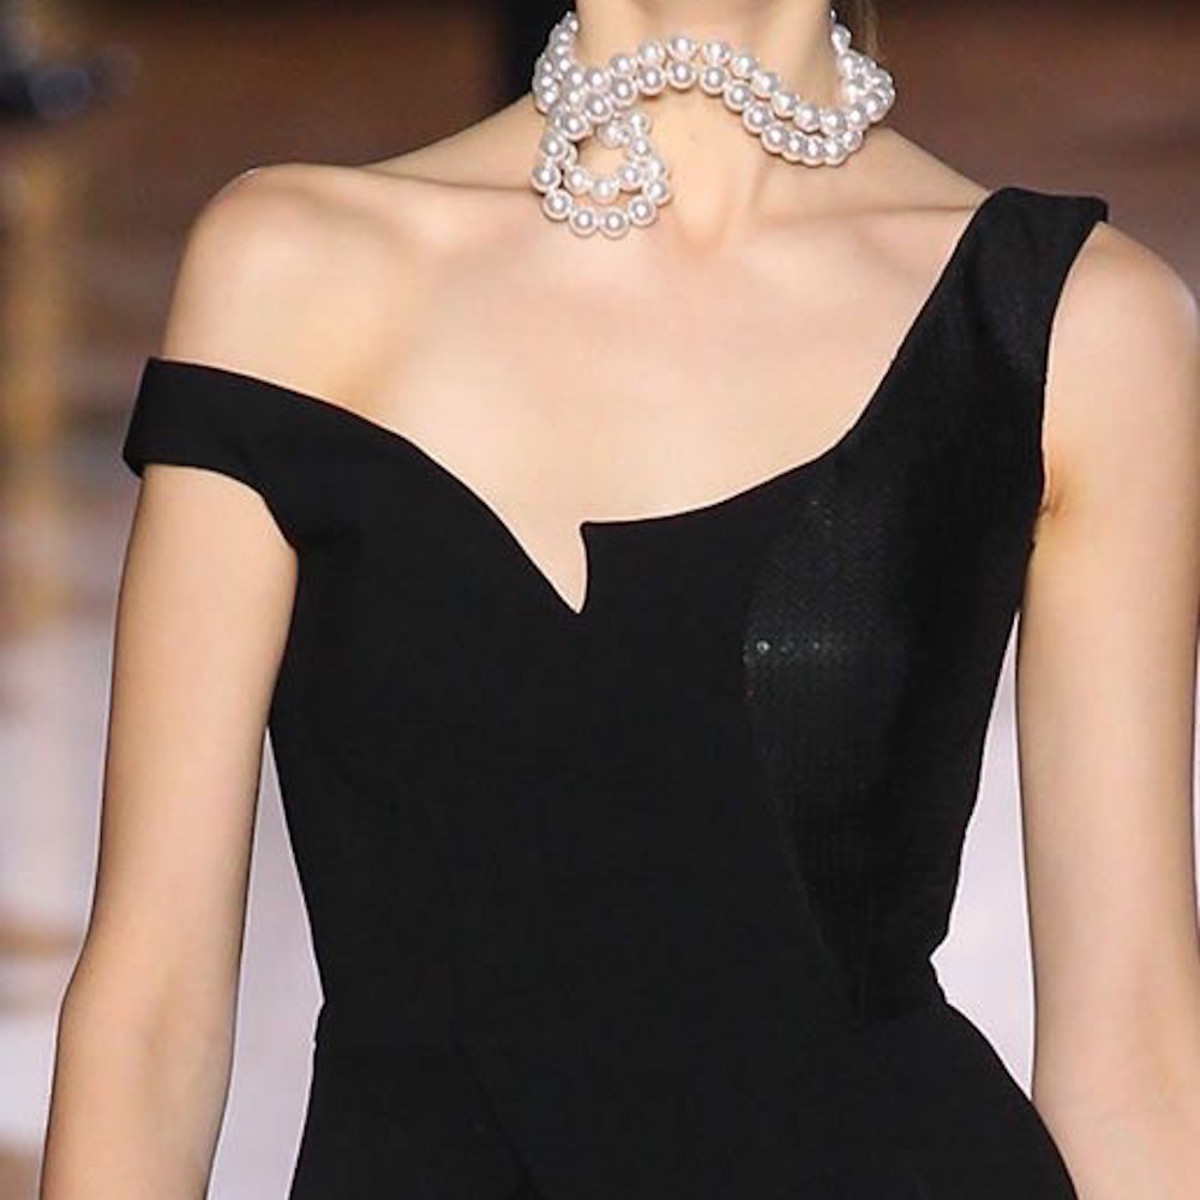 Style Essential: Interesting Facts About the Little Black Dress